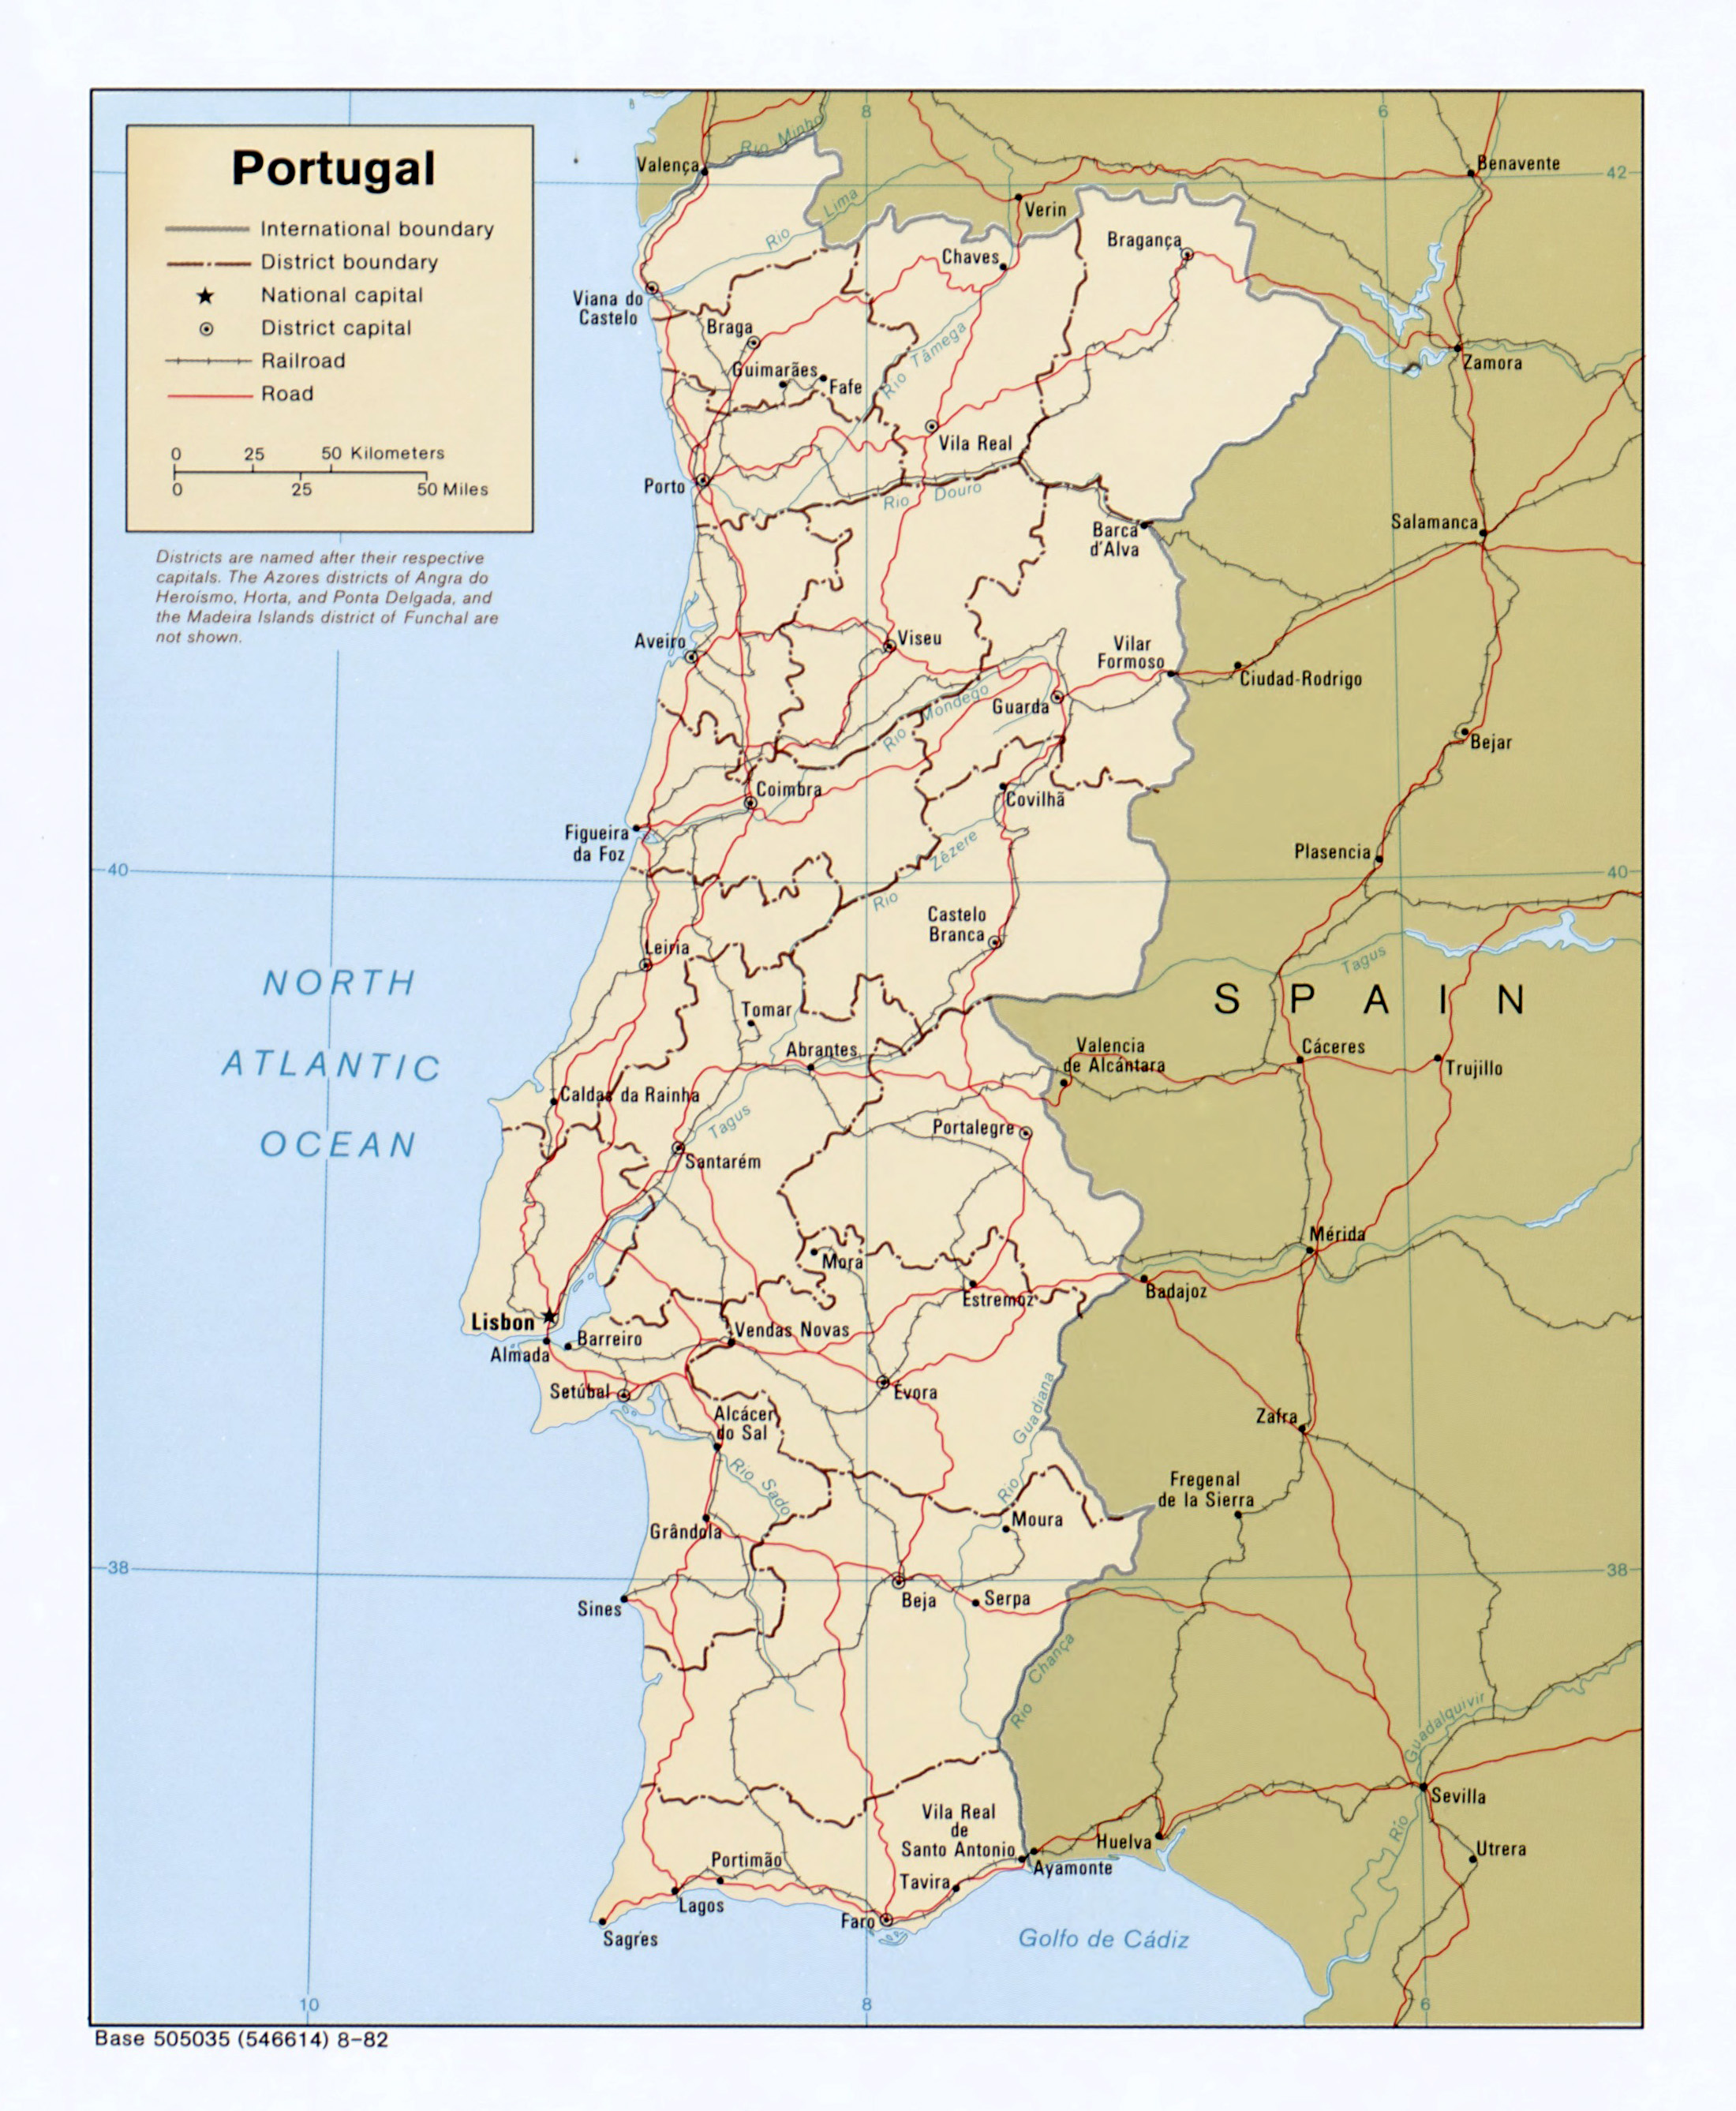 Large Detailed Political And Administrative Map Of Portugal With - Portugal map major cities